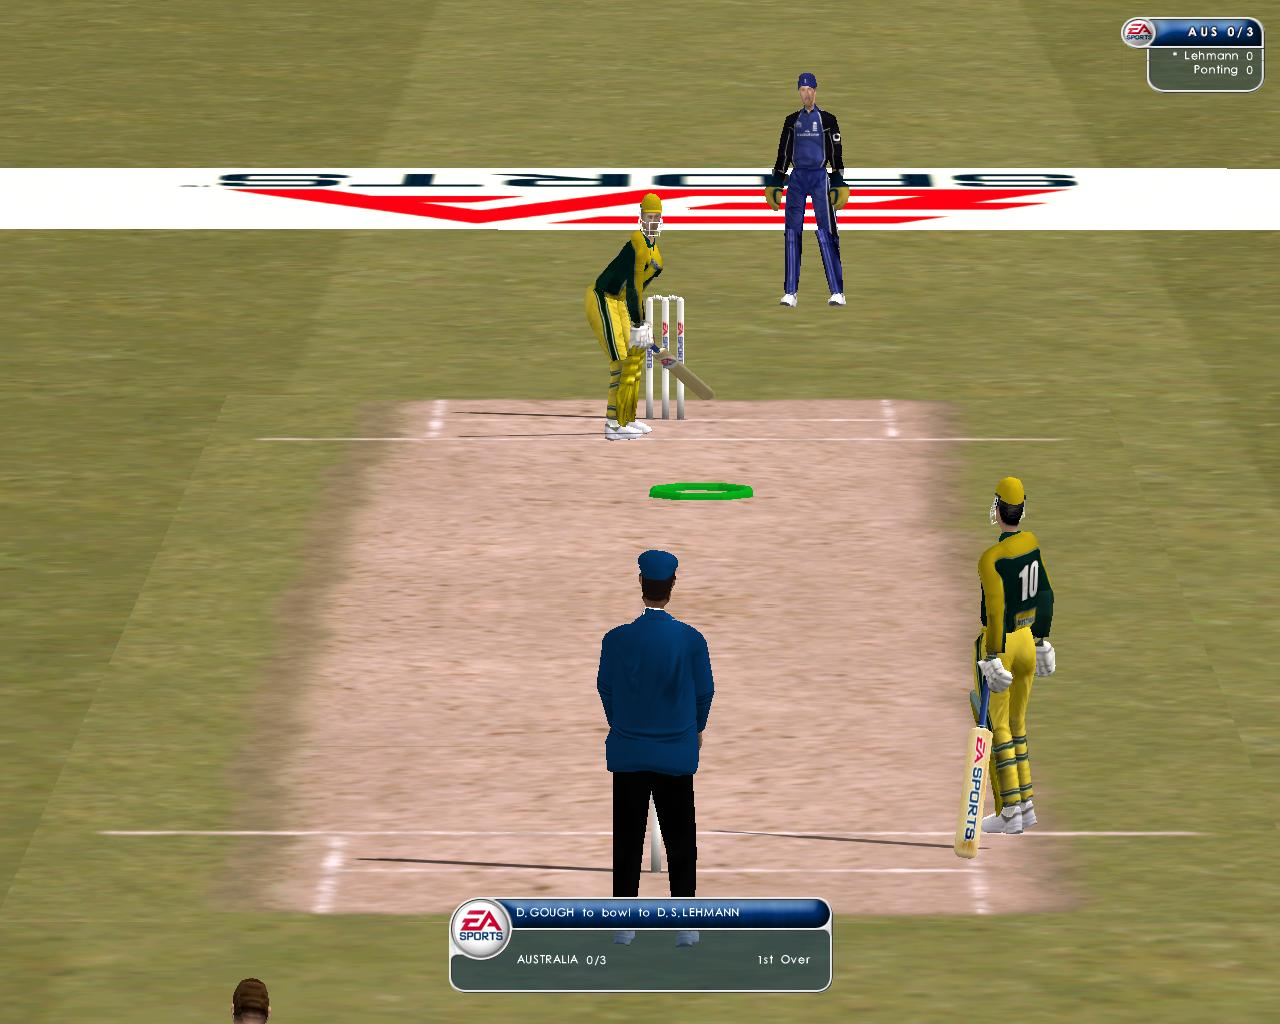 Ea cricket 2011 game free download full version for pc torrent.